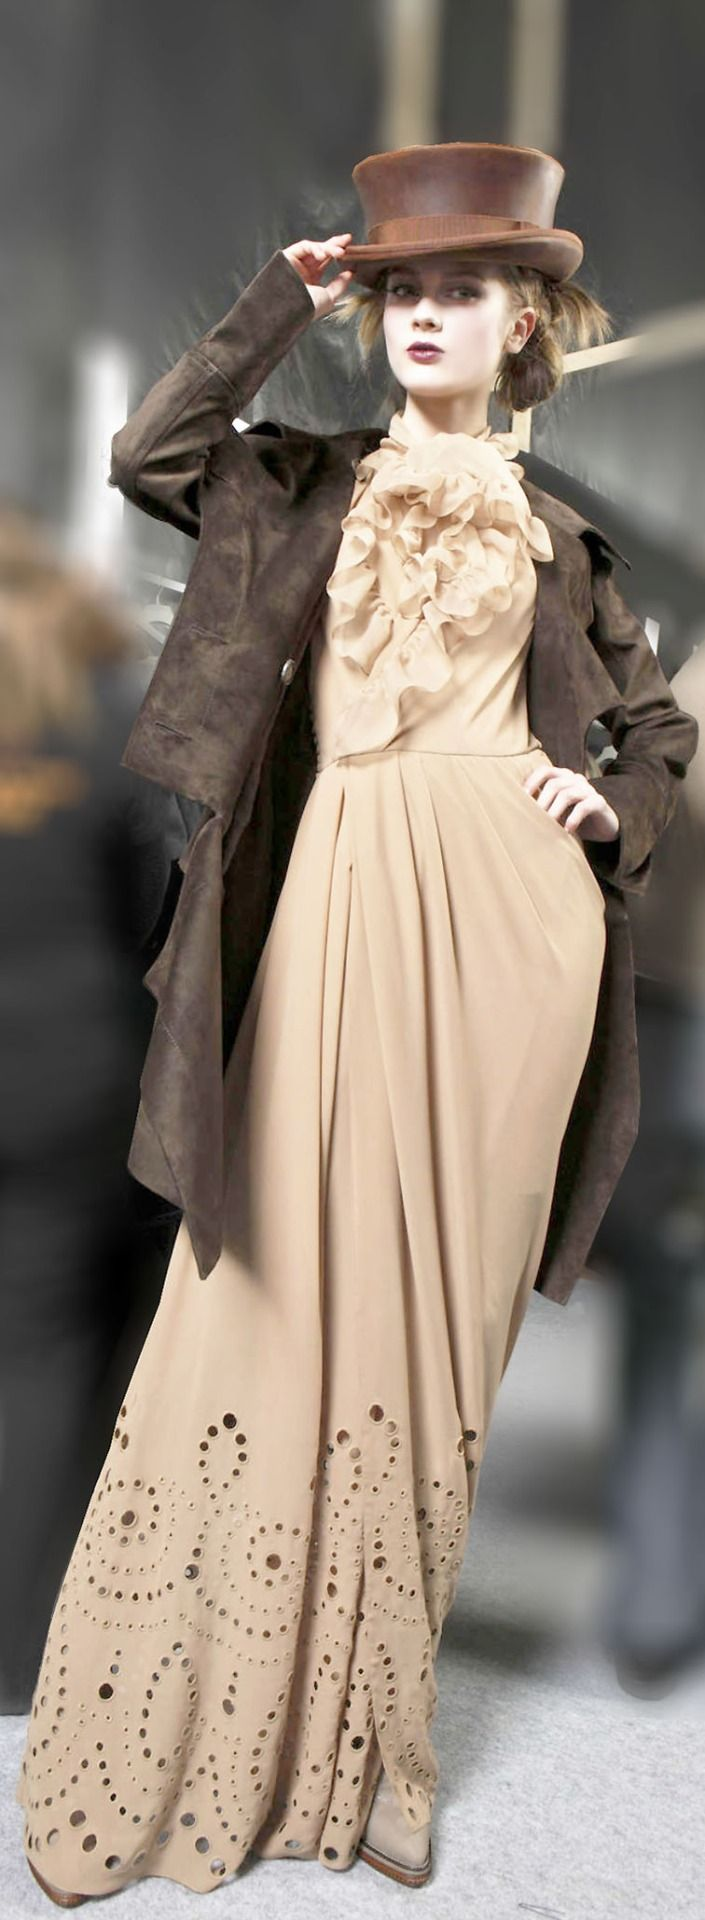 Christian Dior. This style looks a little steampunk-ish, cool.